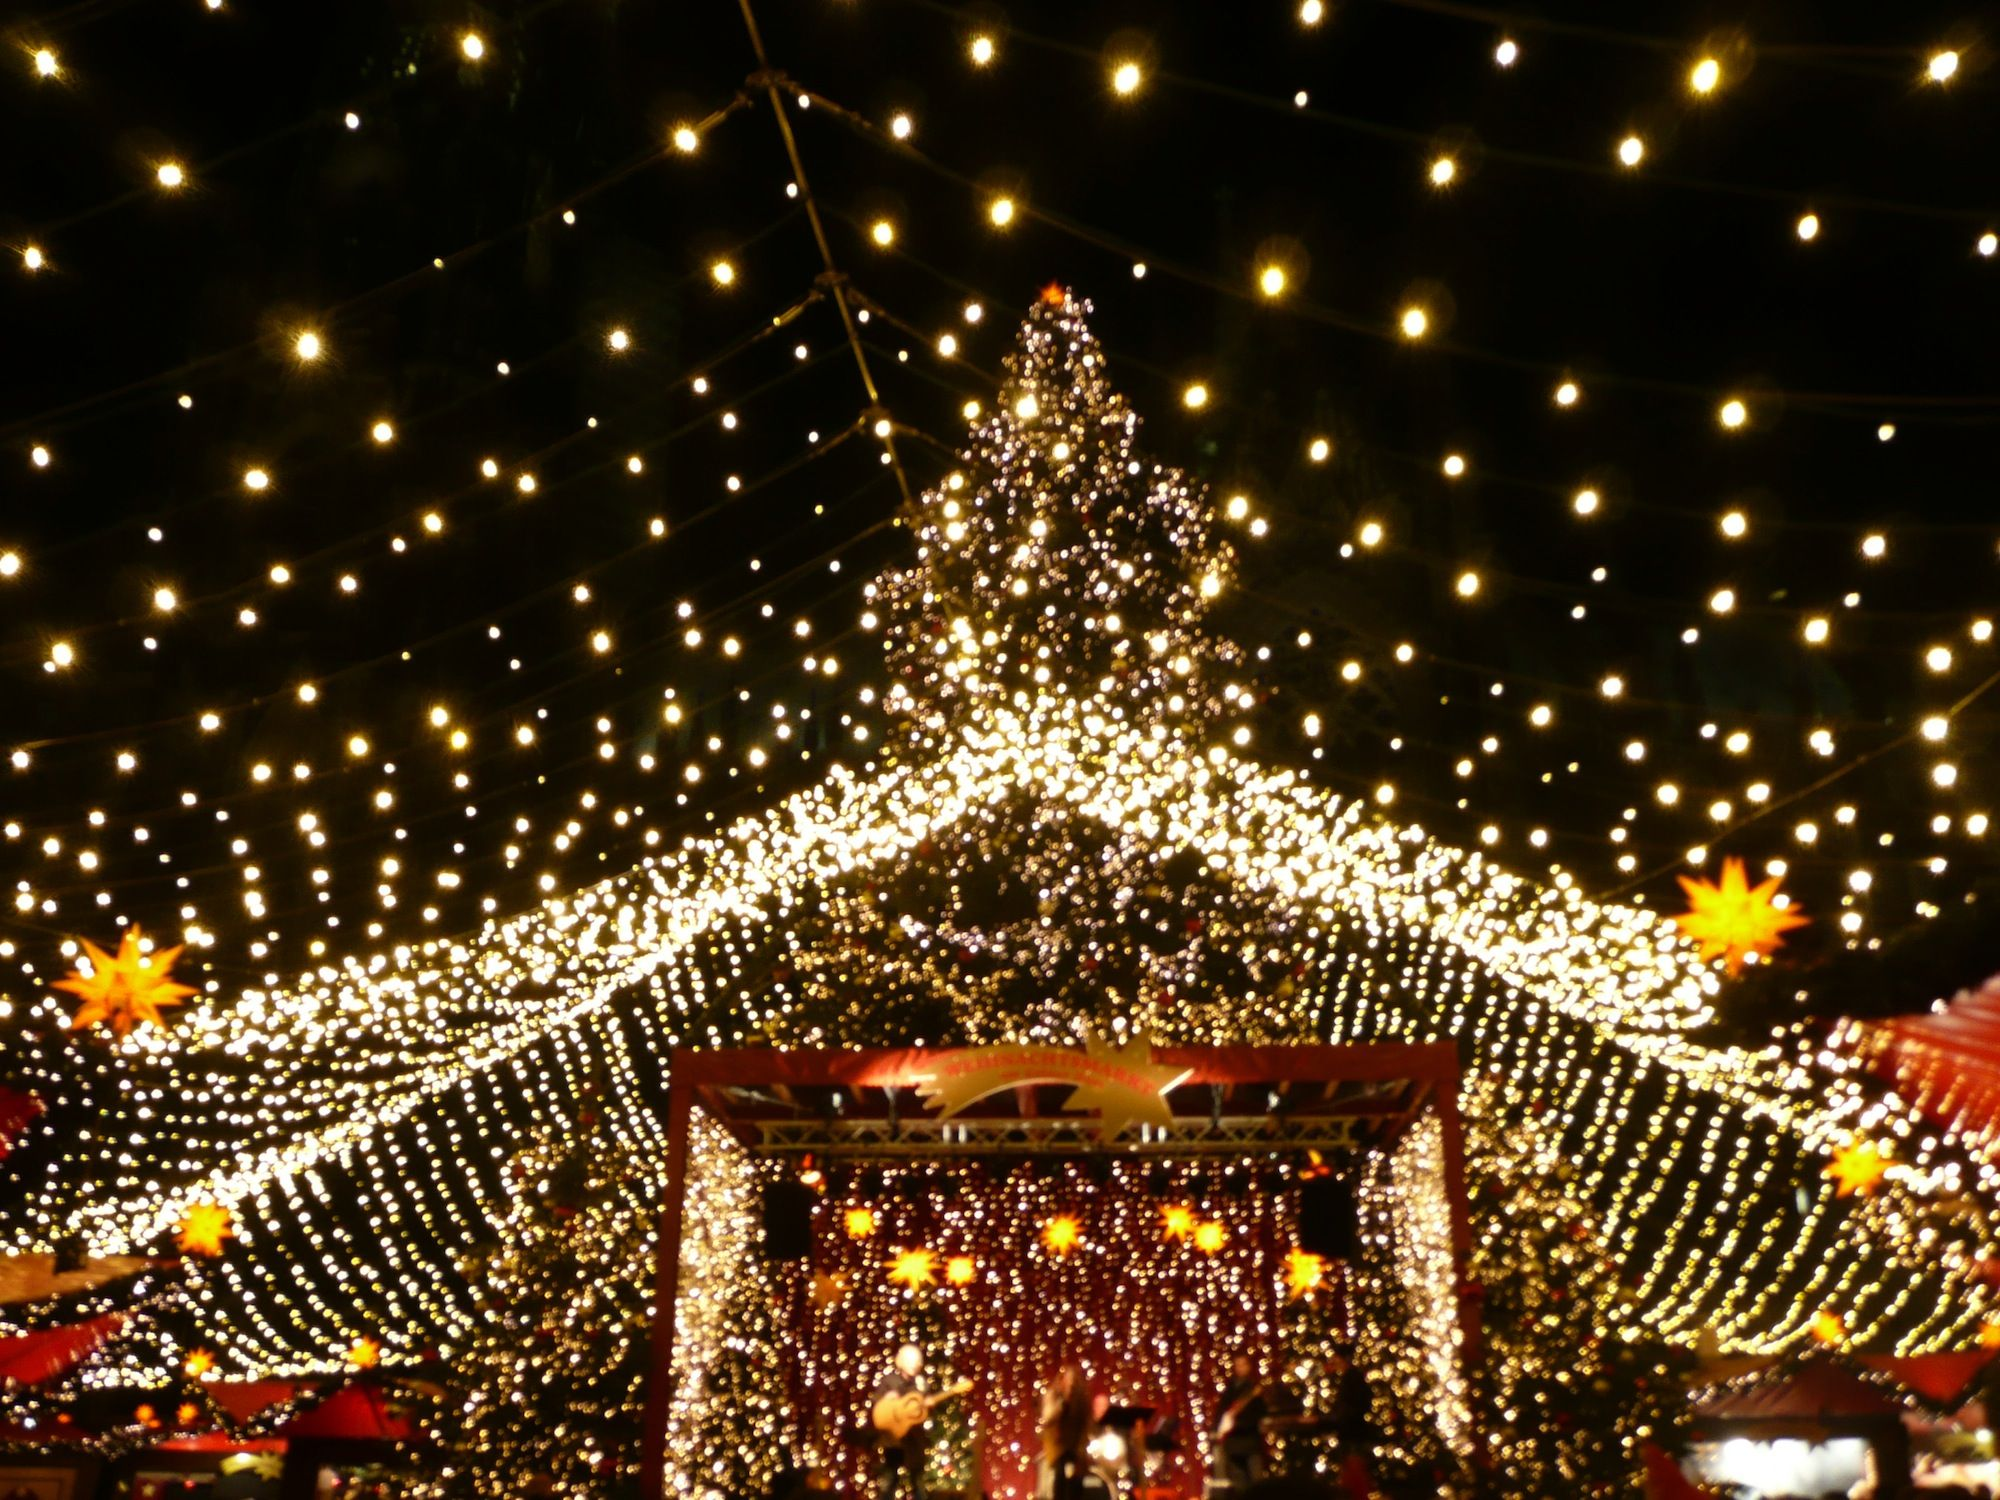 Cologne Dome Christmas Market, Germany